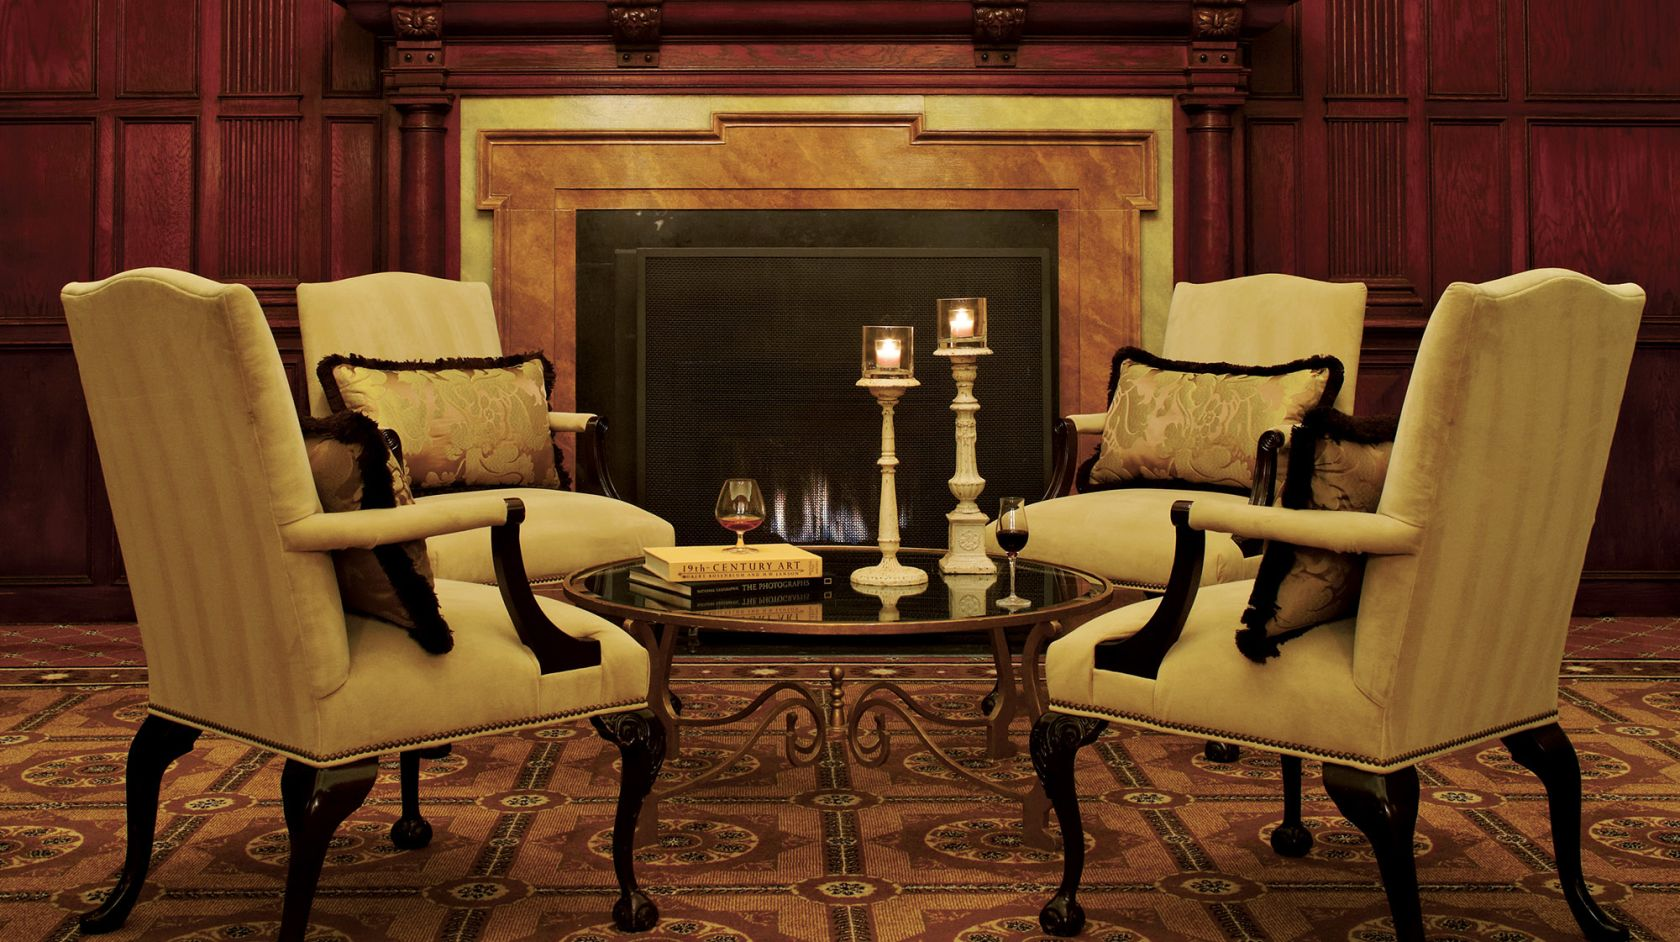 Hay-Adams room fireplace with chairs setting for 4